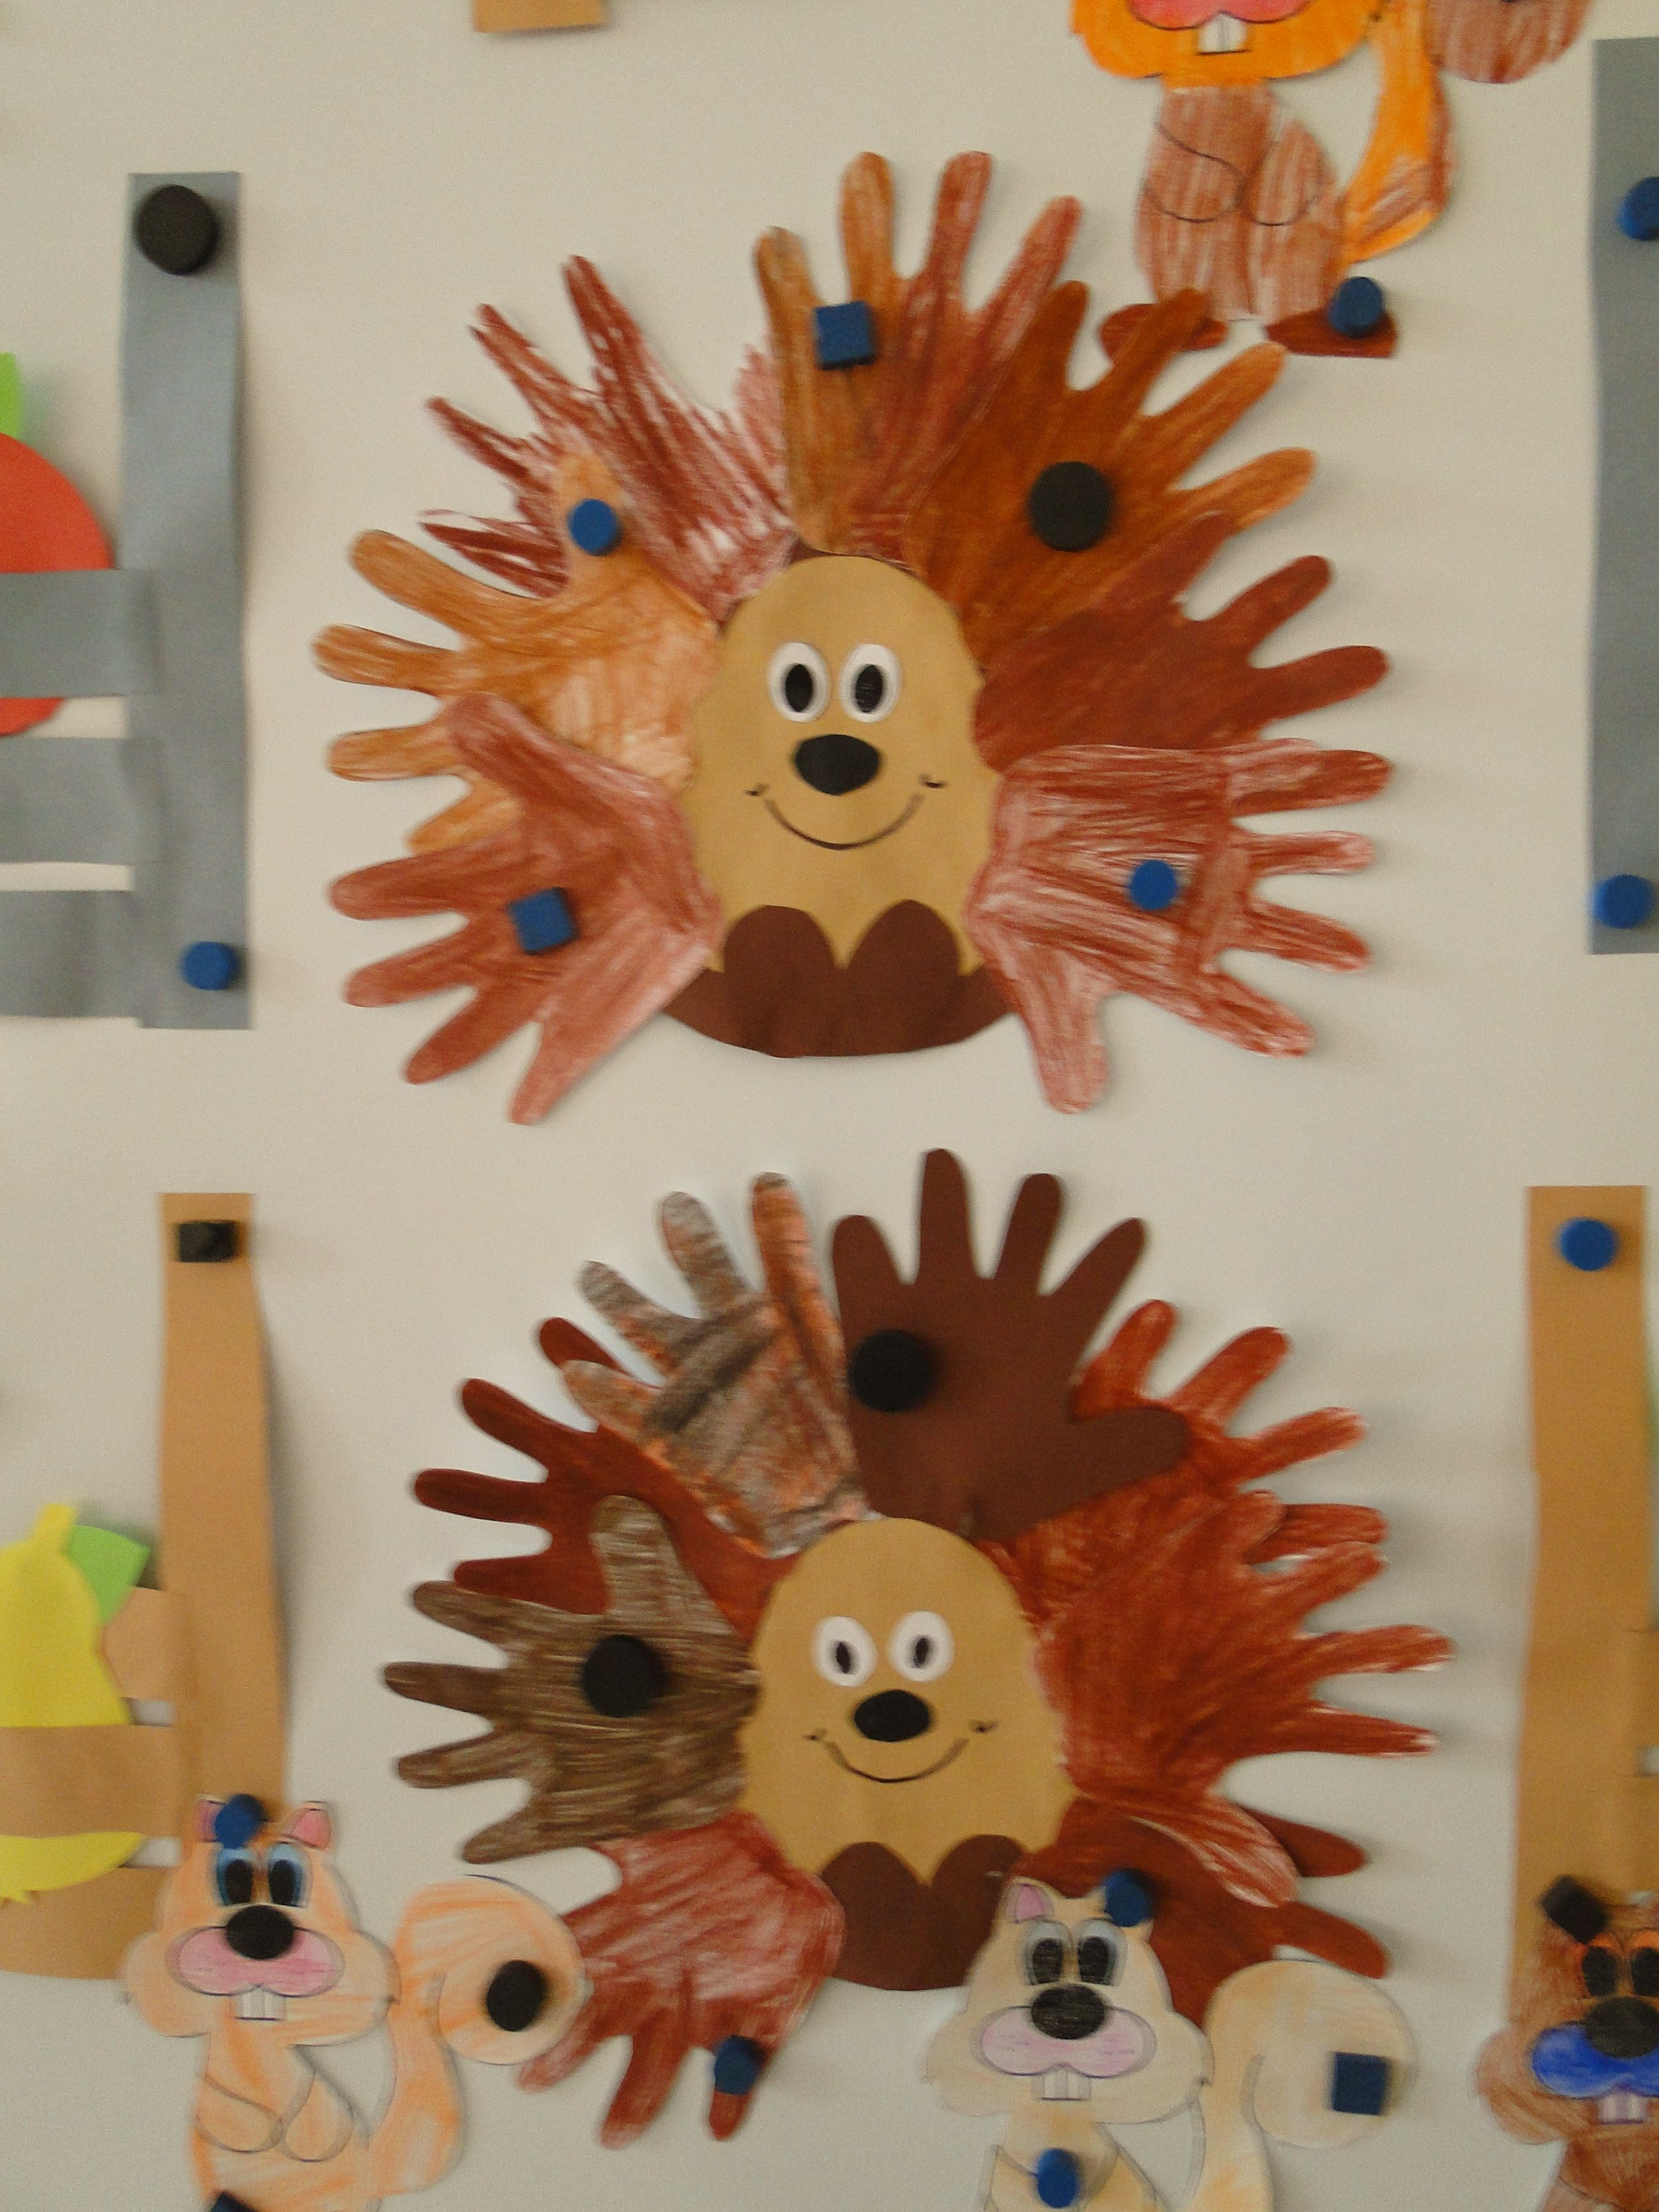 Basteln Herbst Cute Handprint Craft Kids Handprint Footprint Crafts Herbst